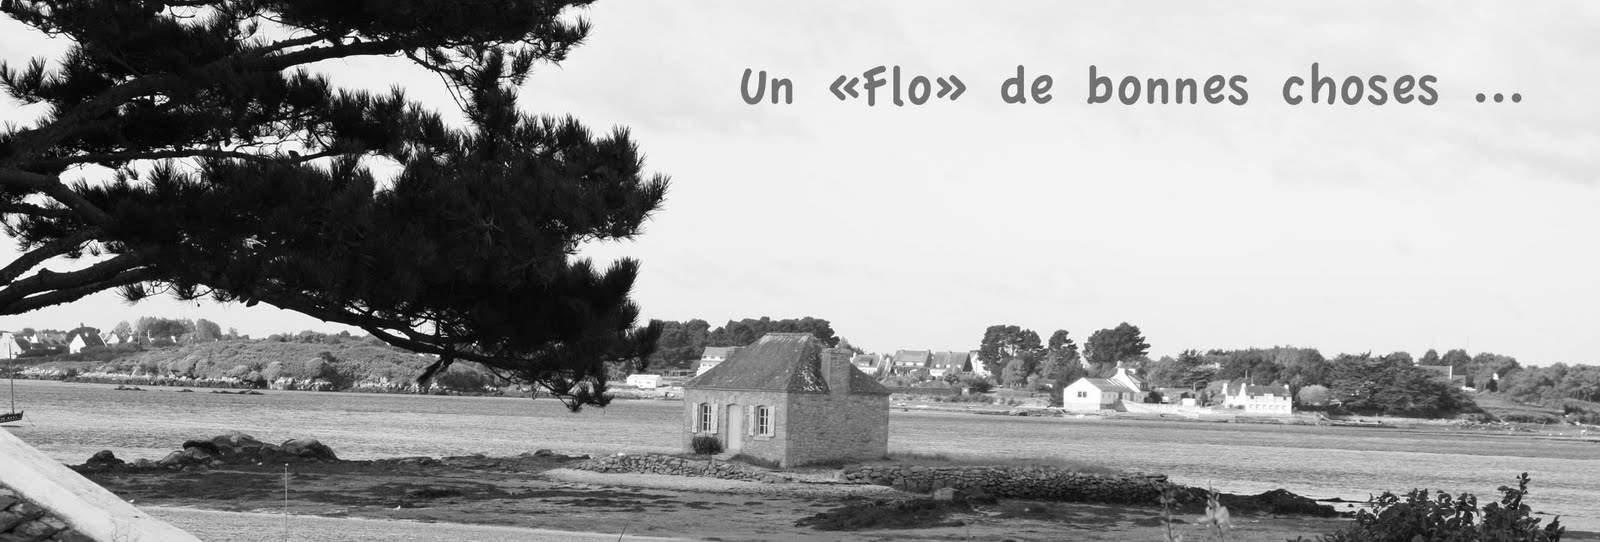 "Un ""flo"" de bonnes choses ..."